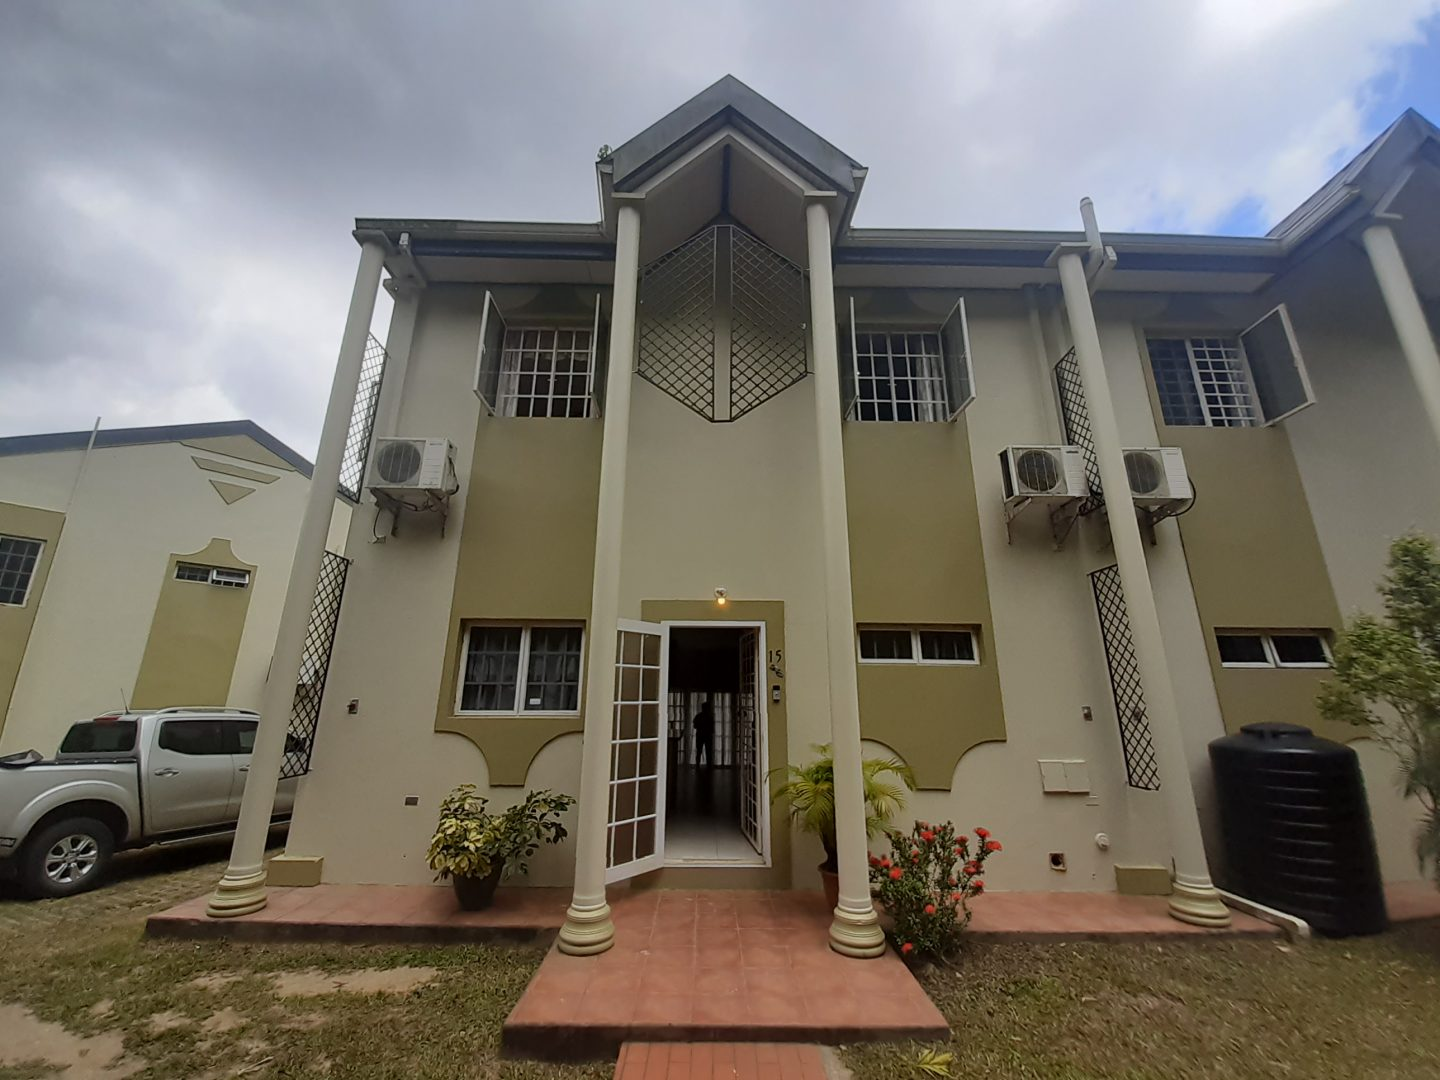 3 bedroom Maracas Valley apt for rent